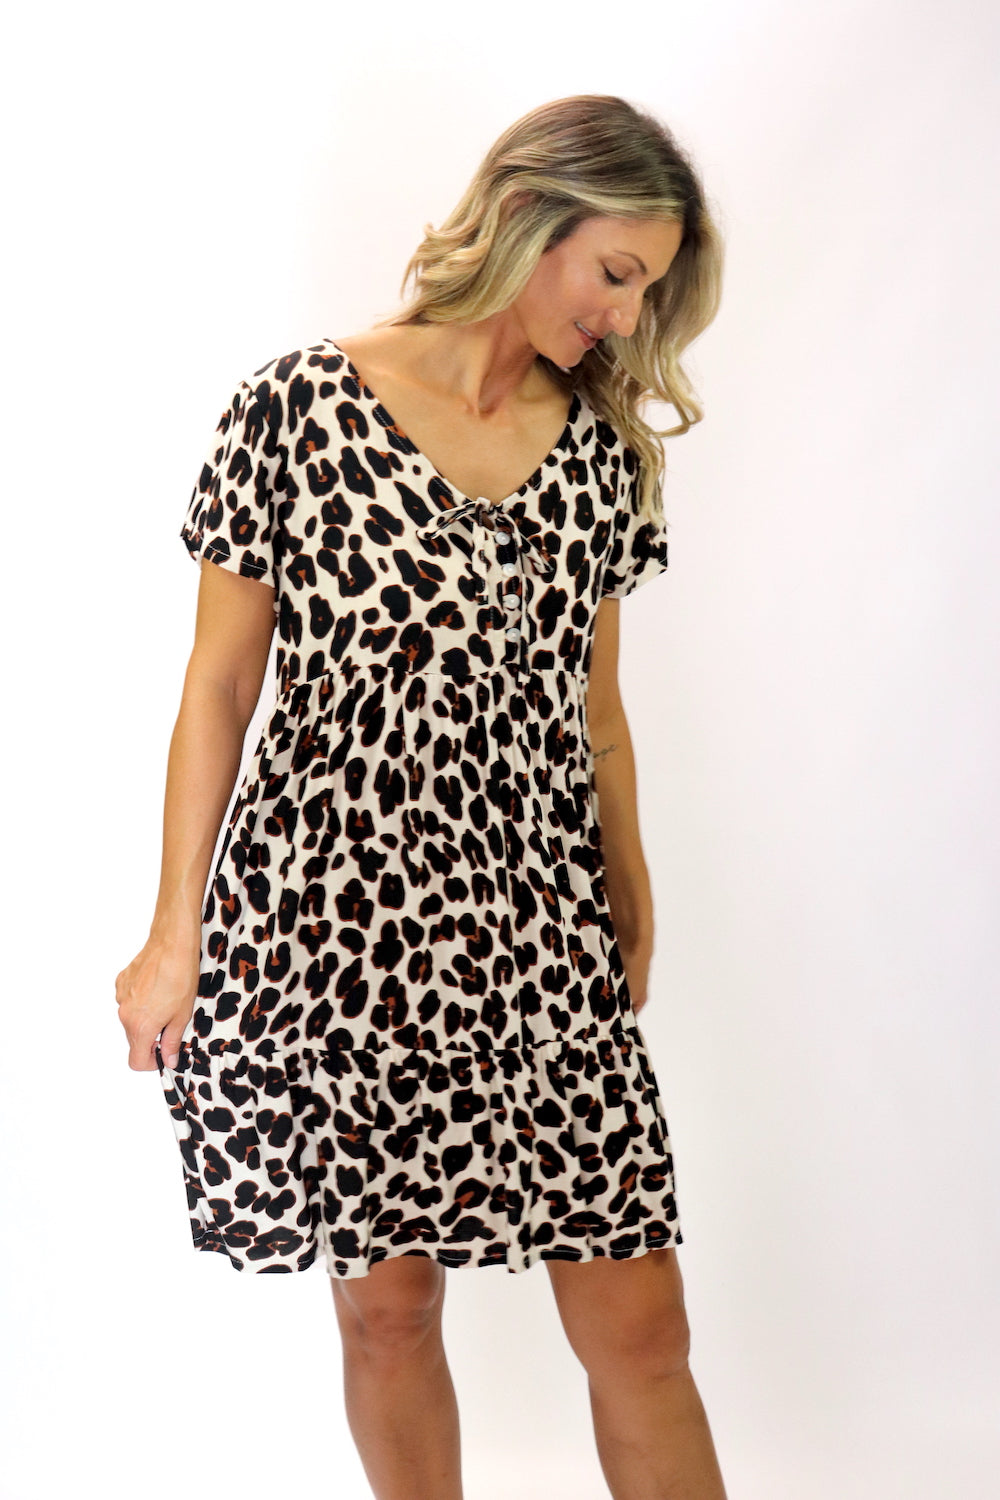 Baby Doll Button Up Dress In Black Jaguar